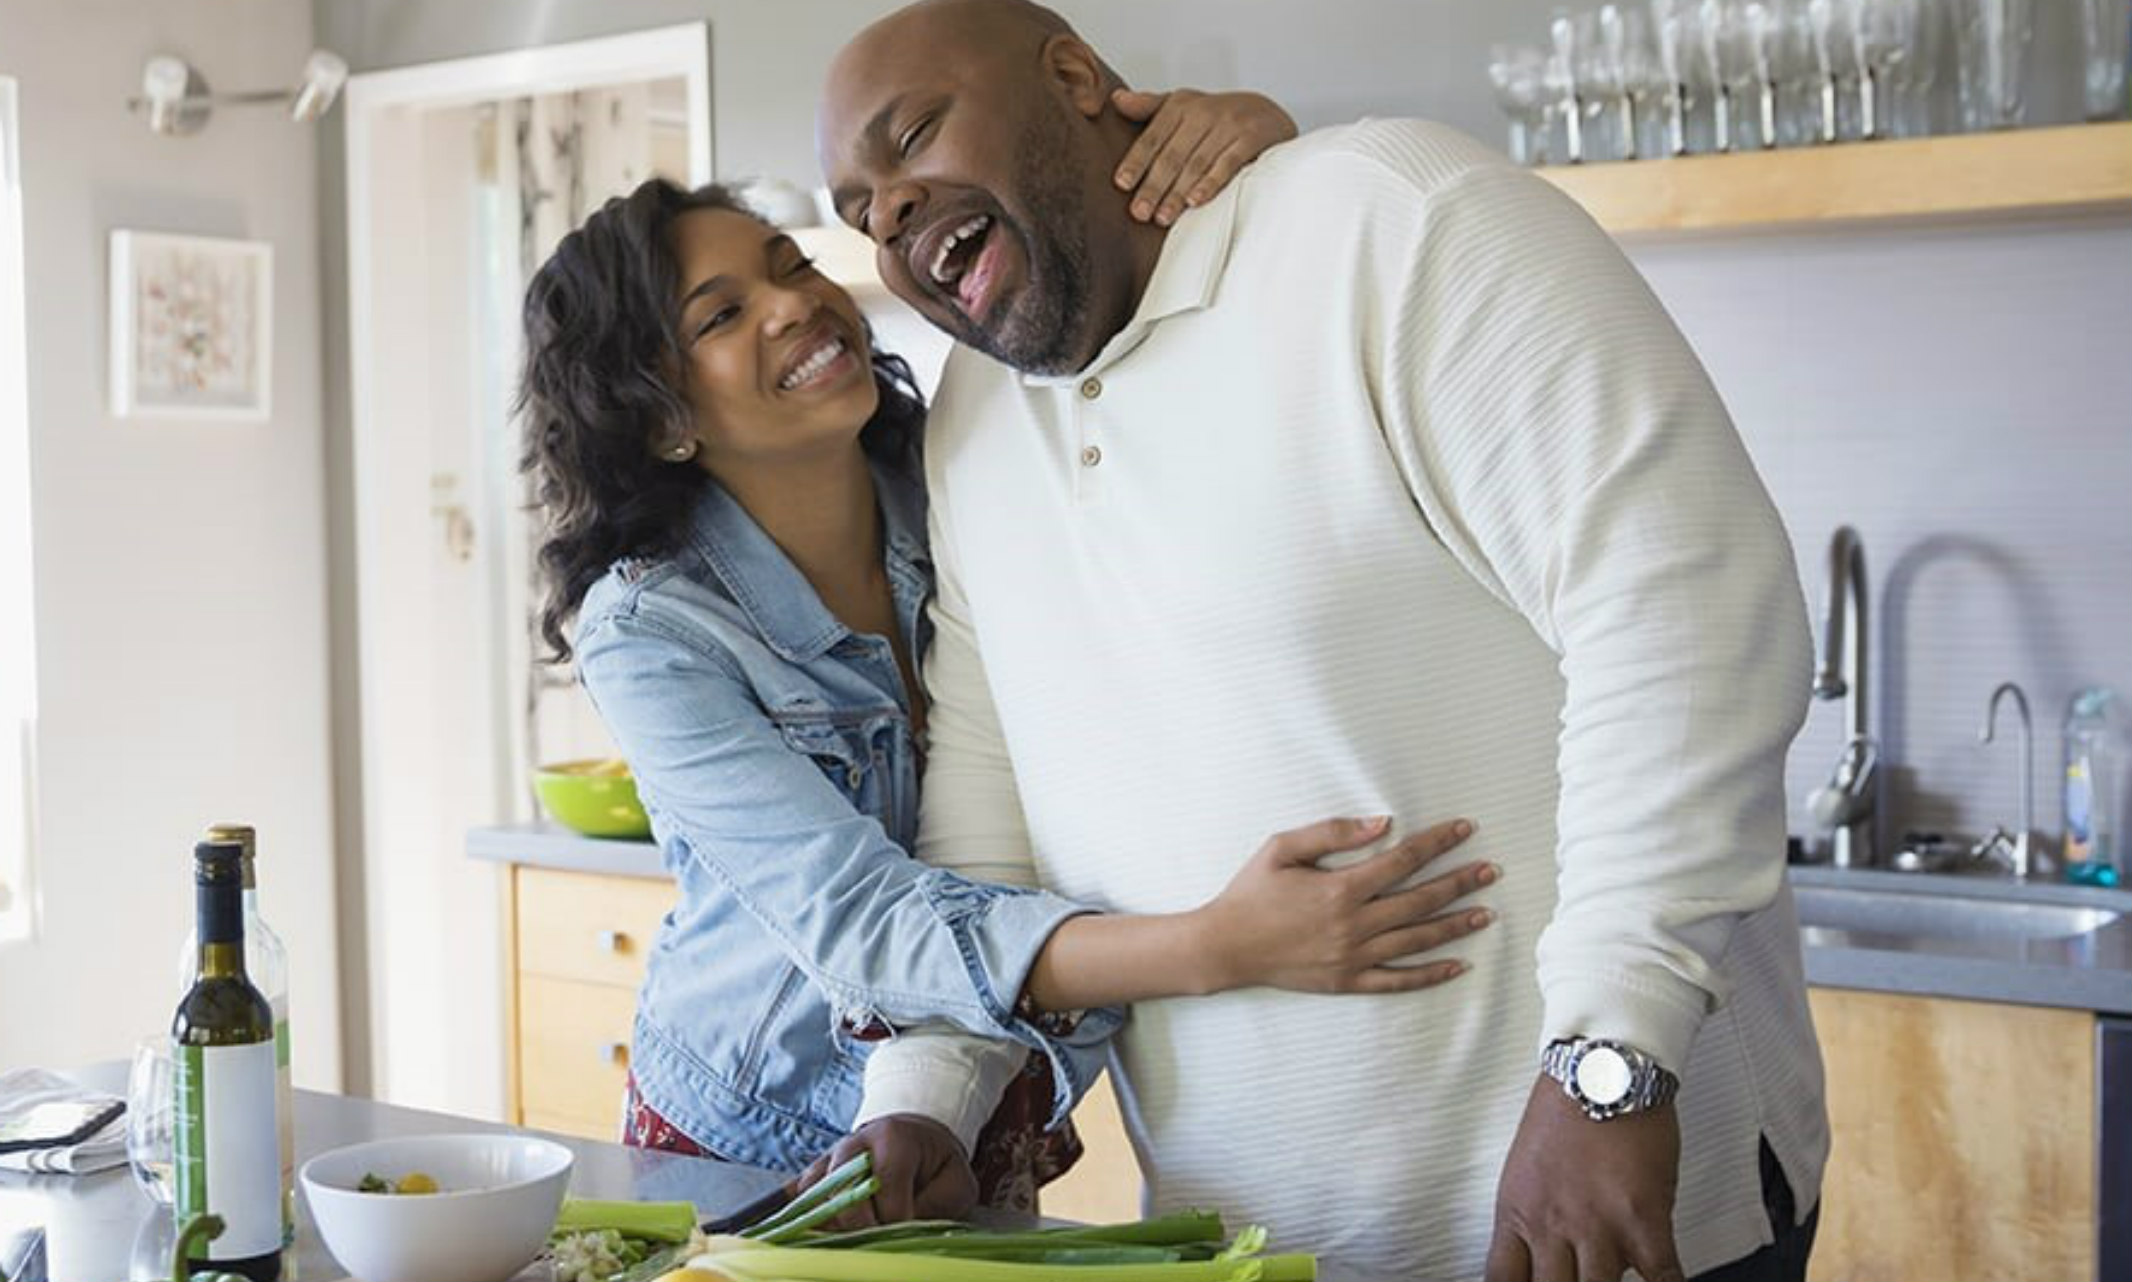 Man and woman who present as black standing in the kitchen